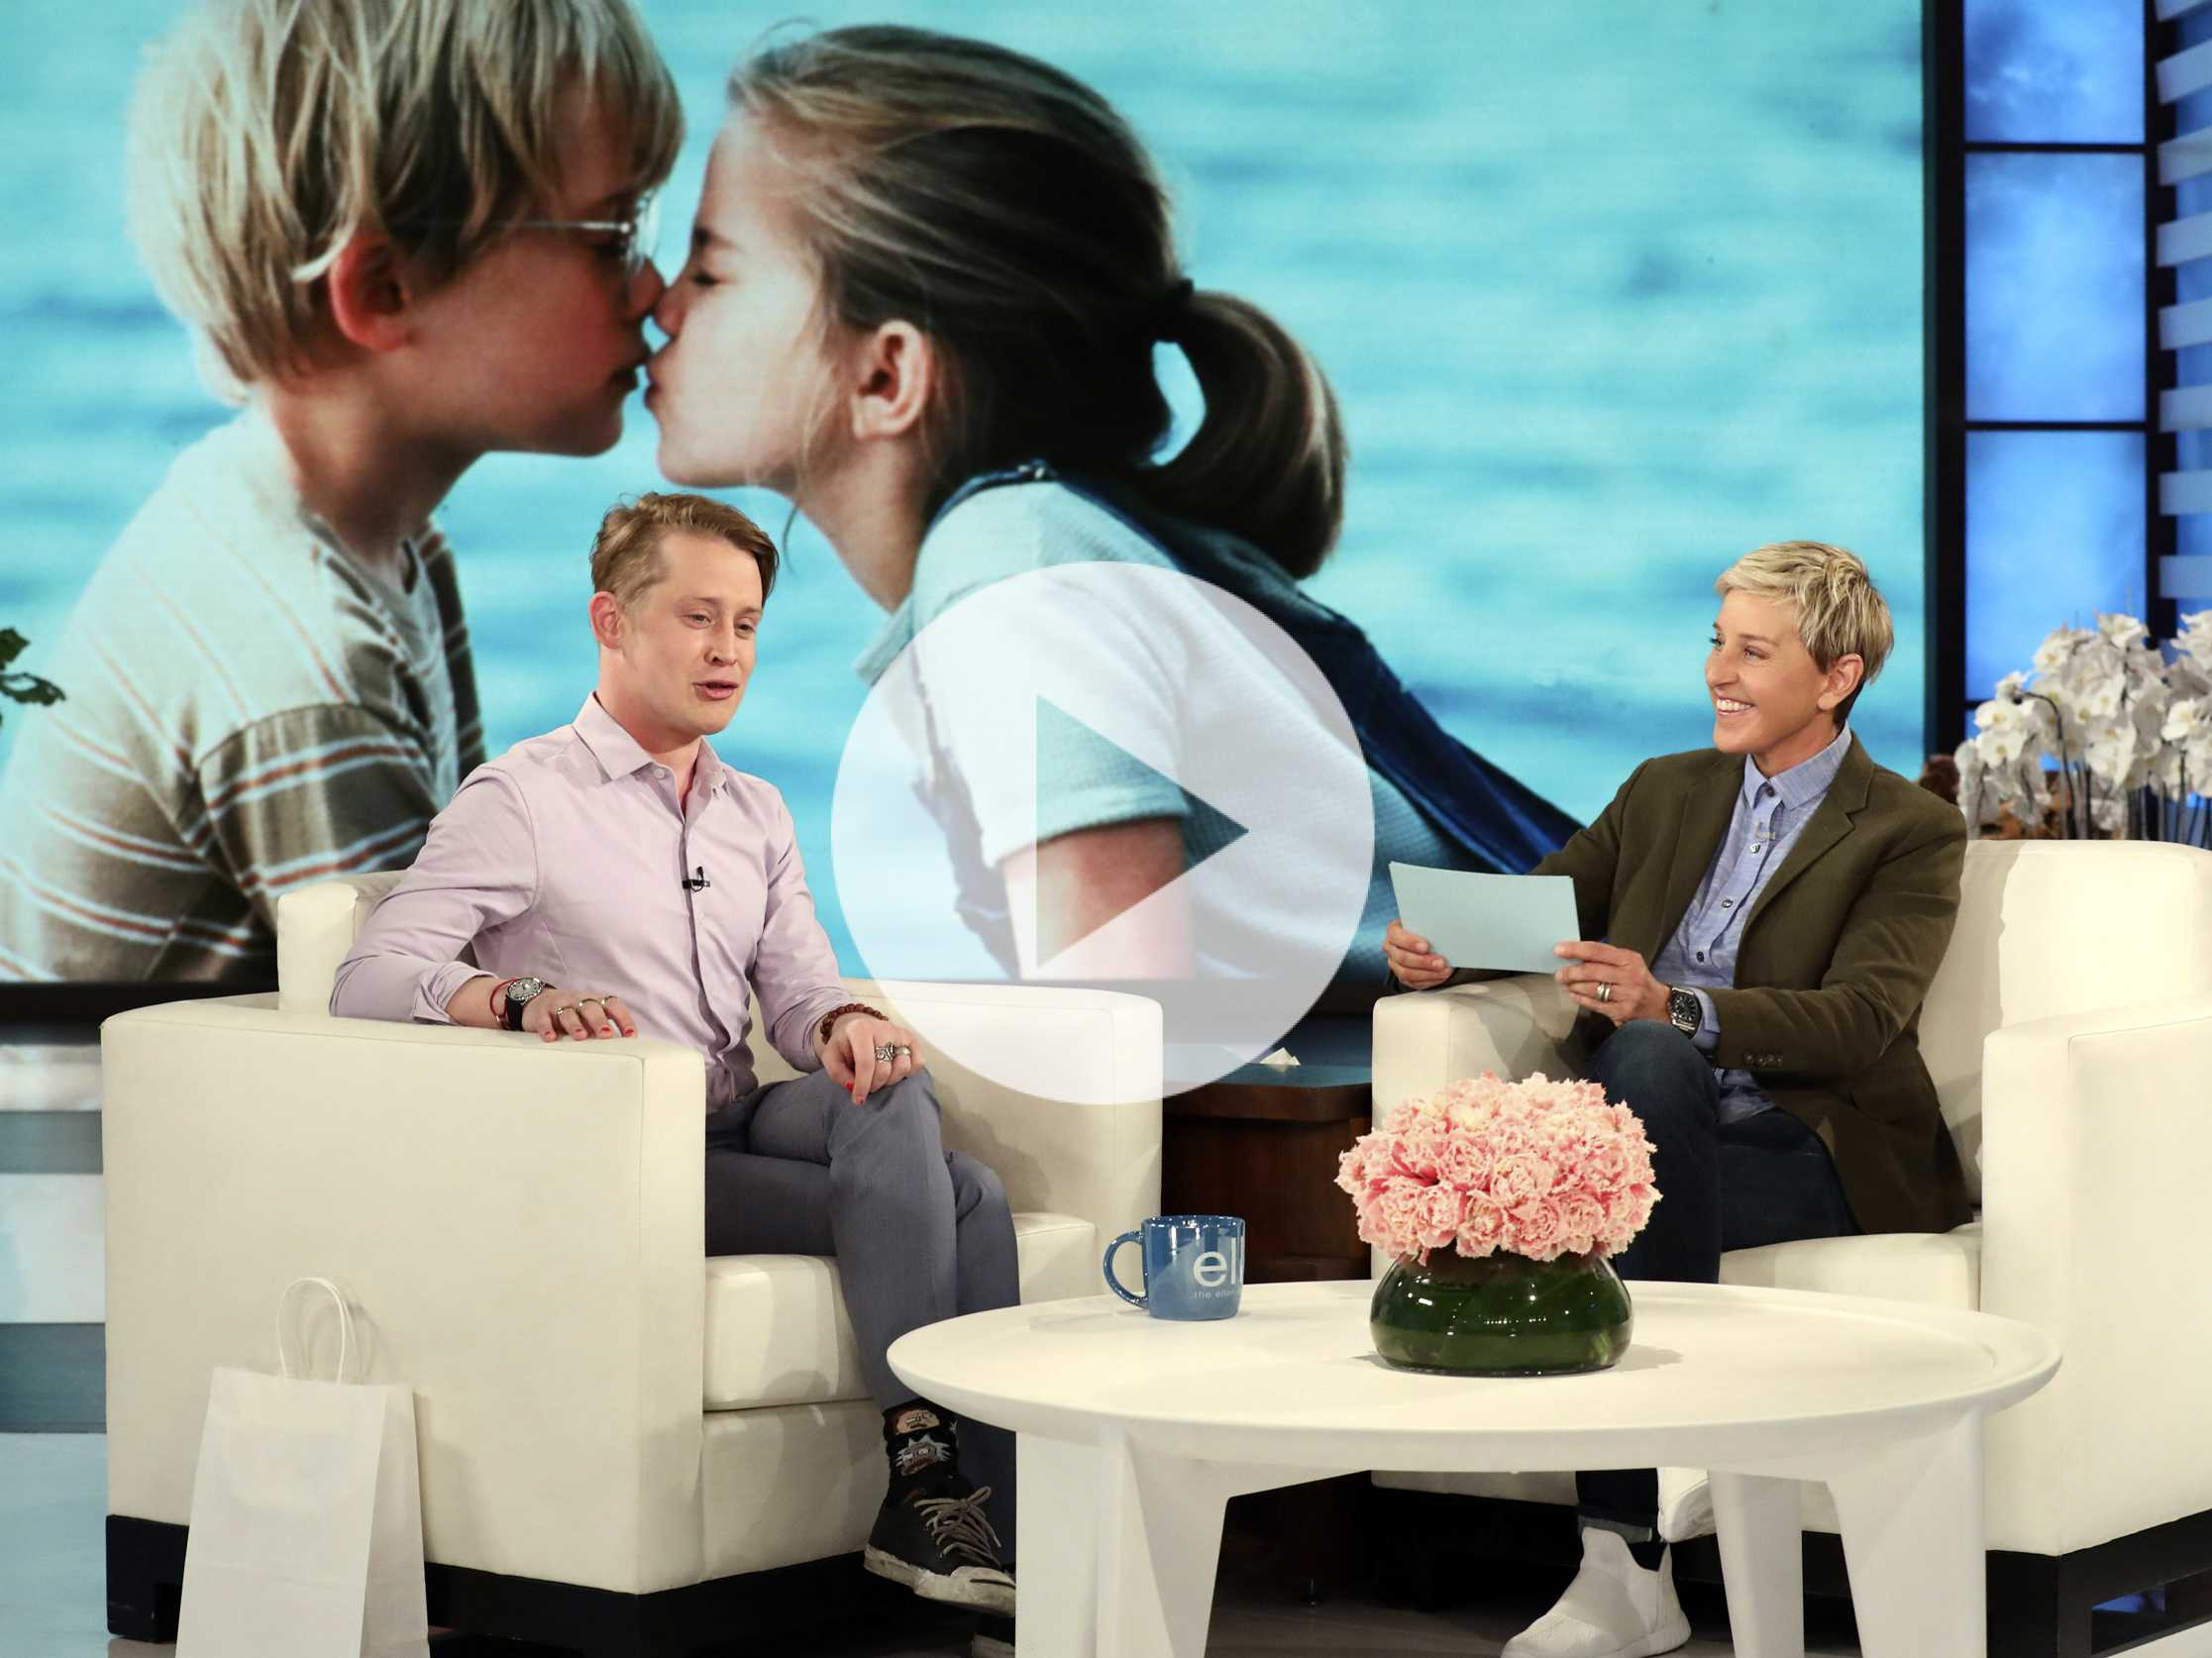 Watch: Macaulay Culkin Tells Ellen He Avoids Watching 'Home Alone'